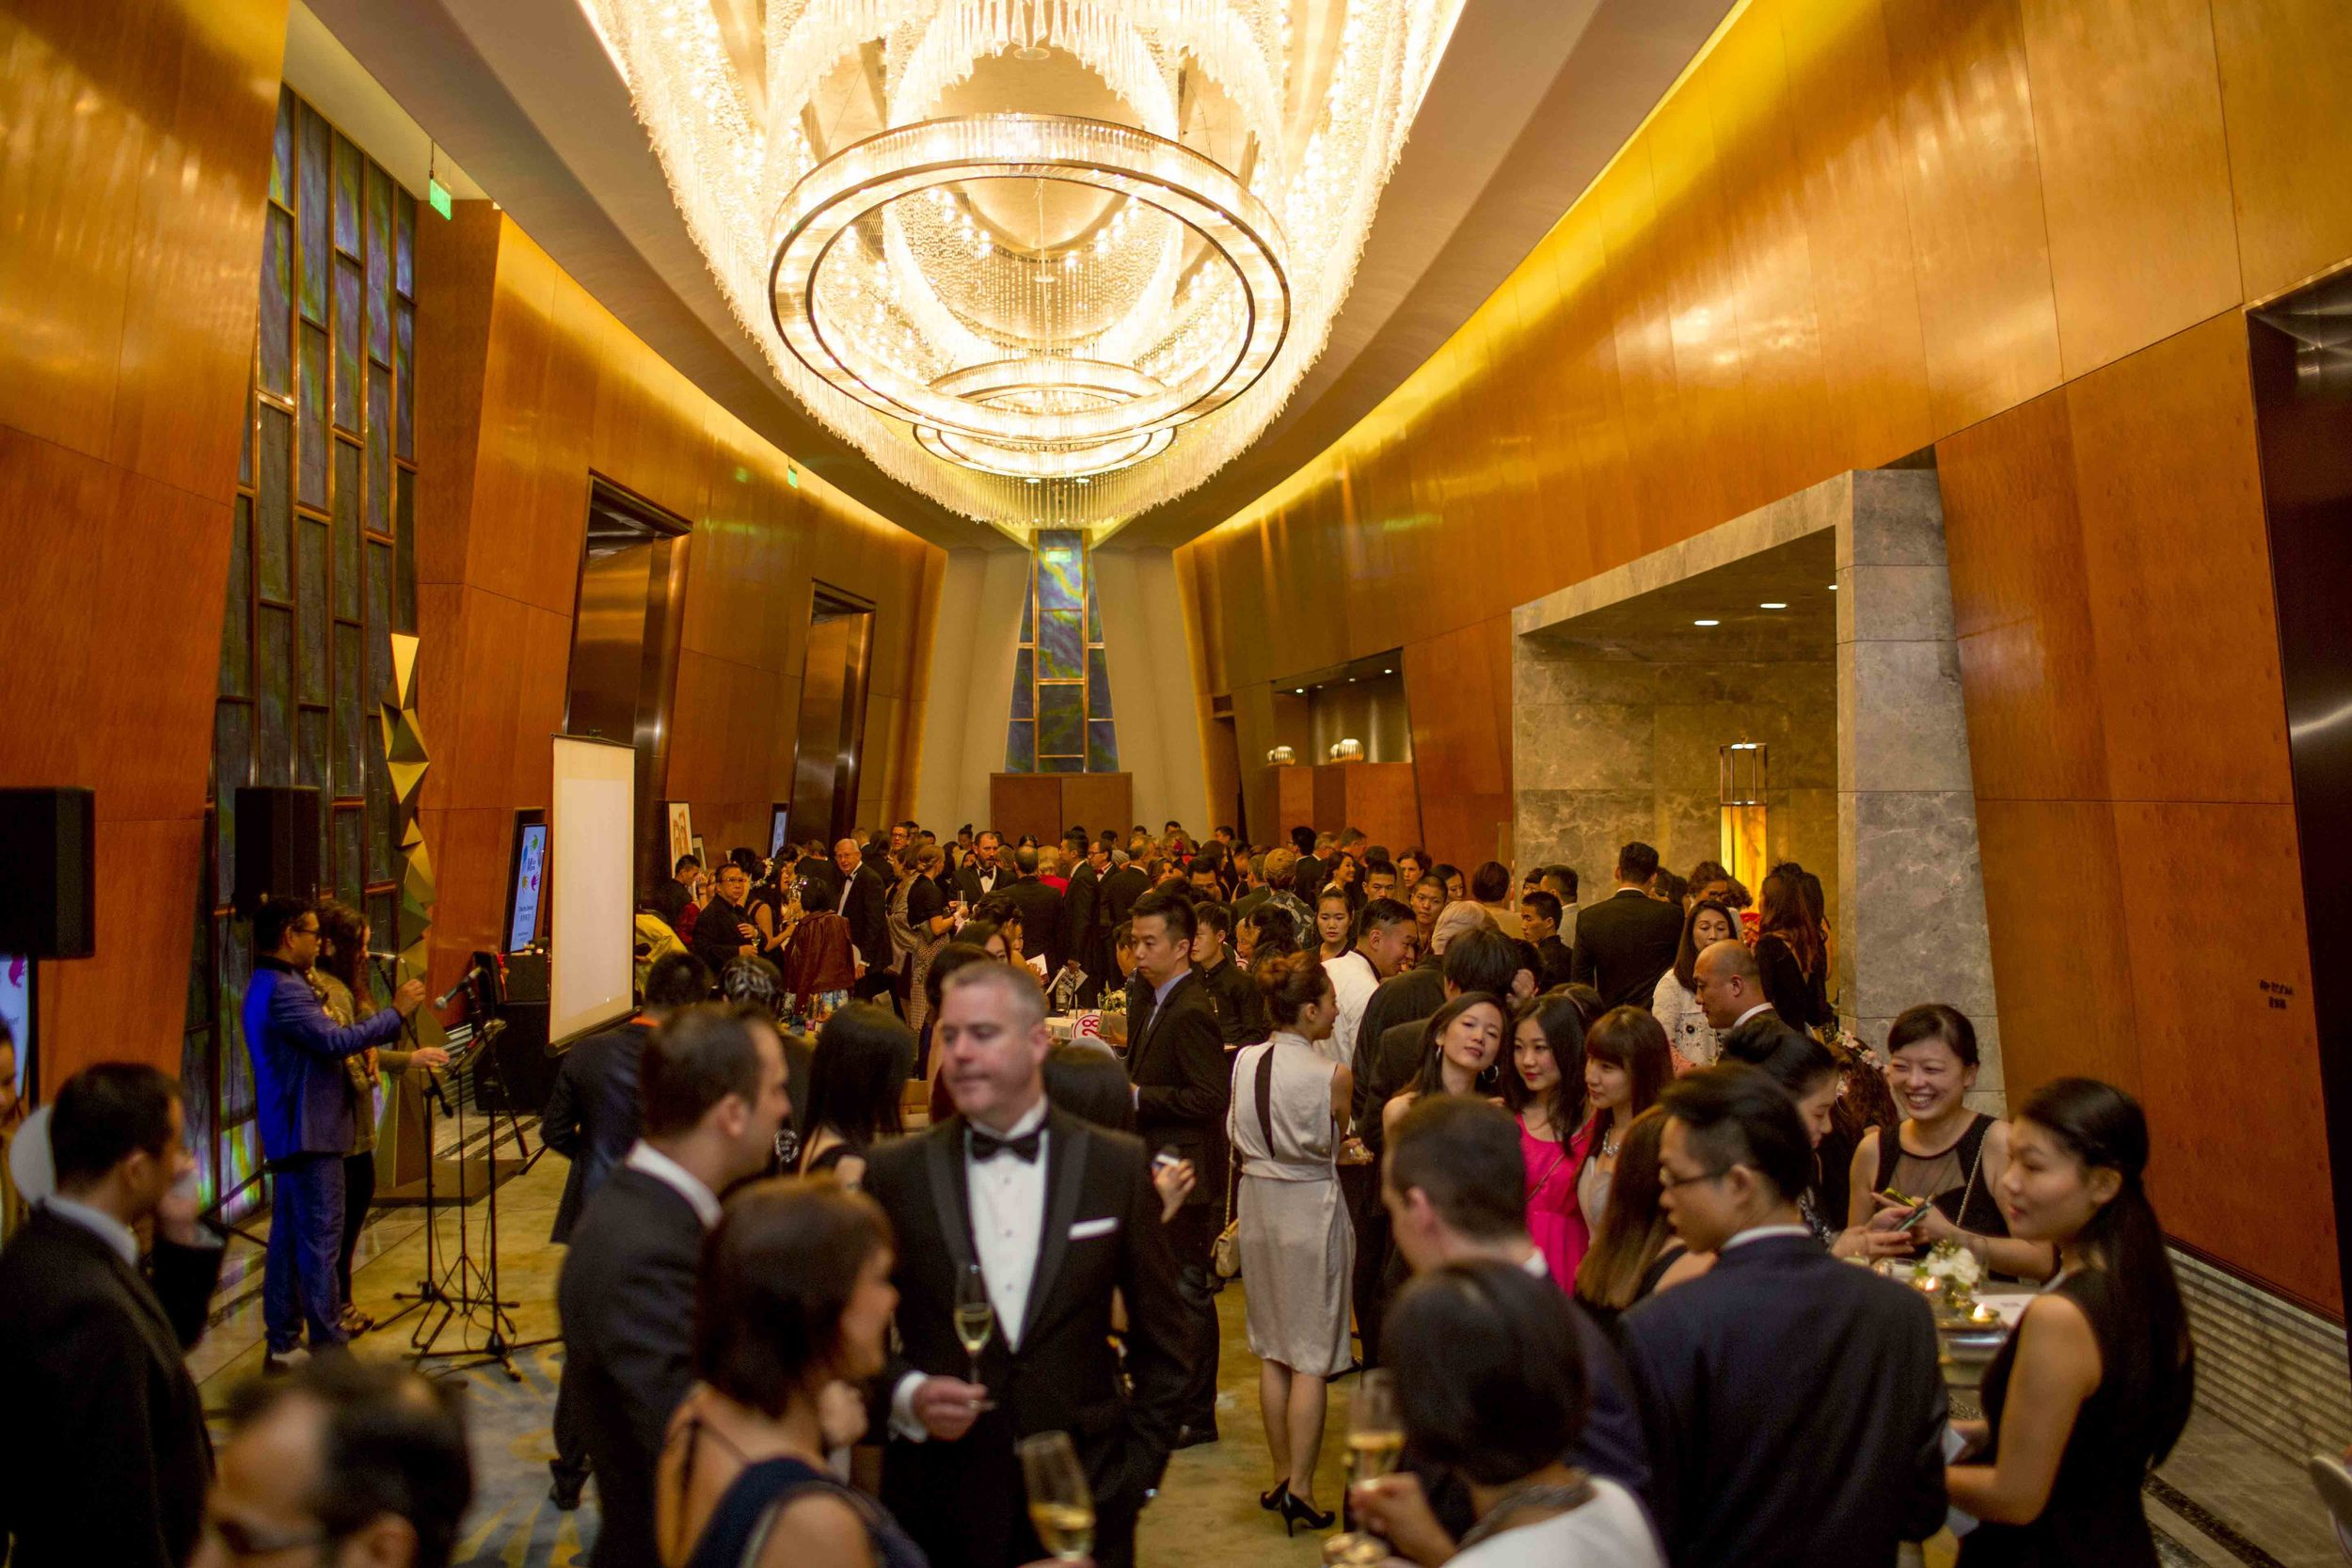 Remarkable turnout at the annual charity auction gala.